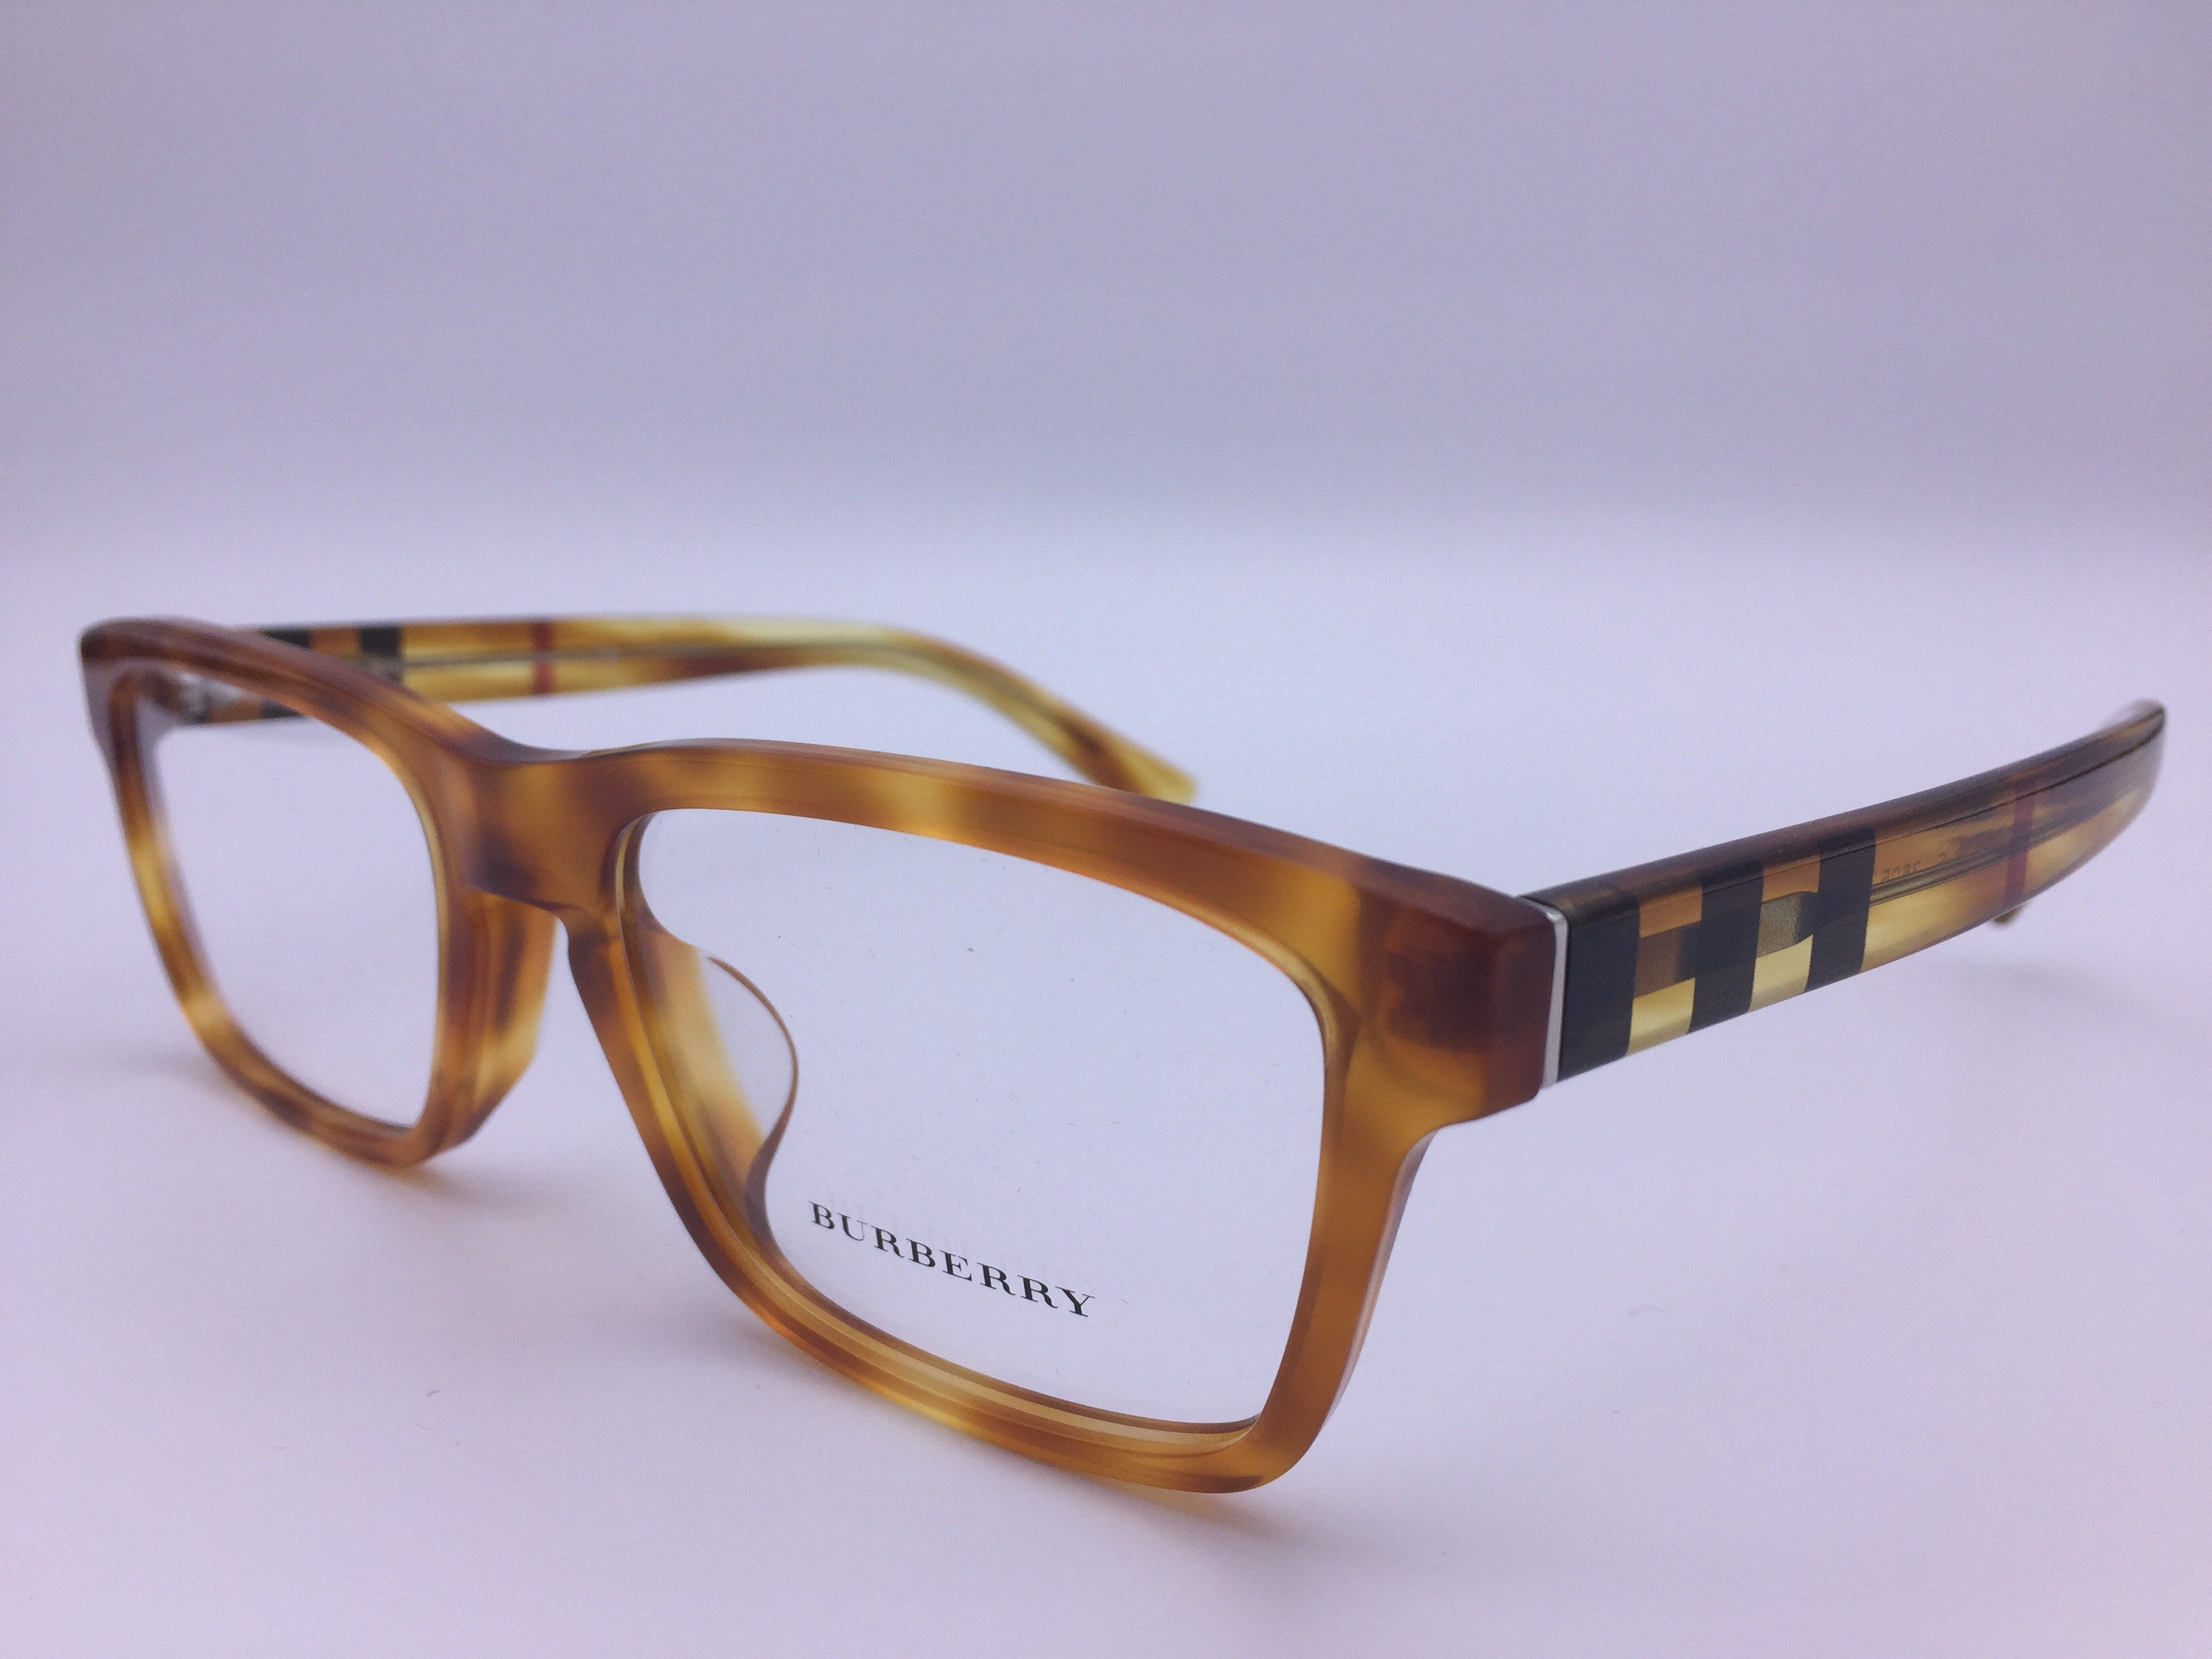 6099f7136c Burberry B 2226-F 3605 Orange Tortoise Plastic Eyeglasses 55mm ODU -  Walmart.com